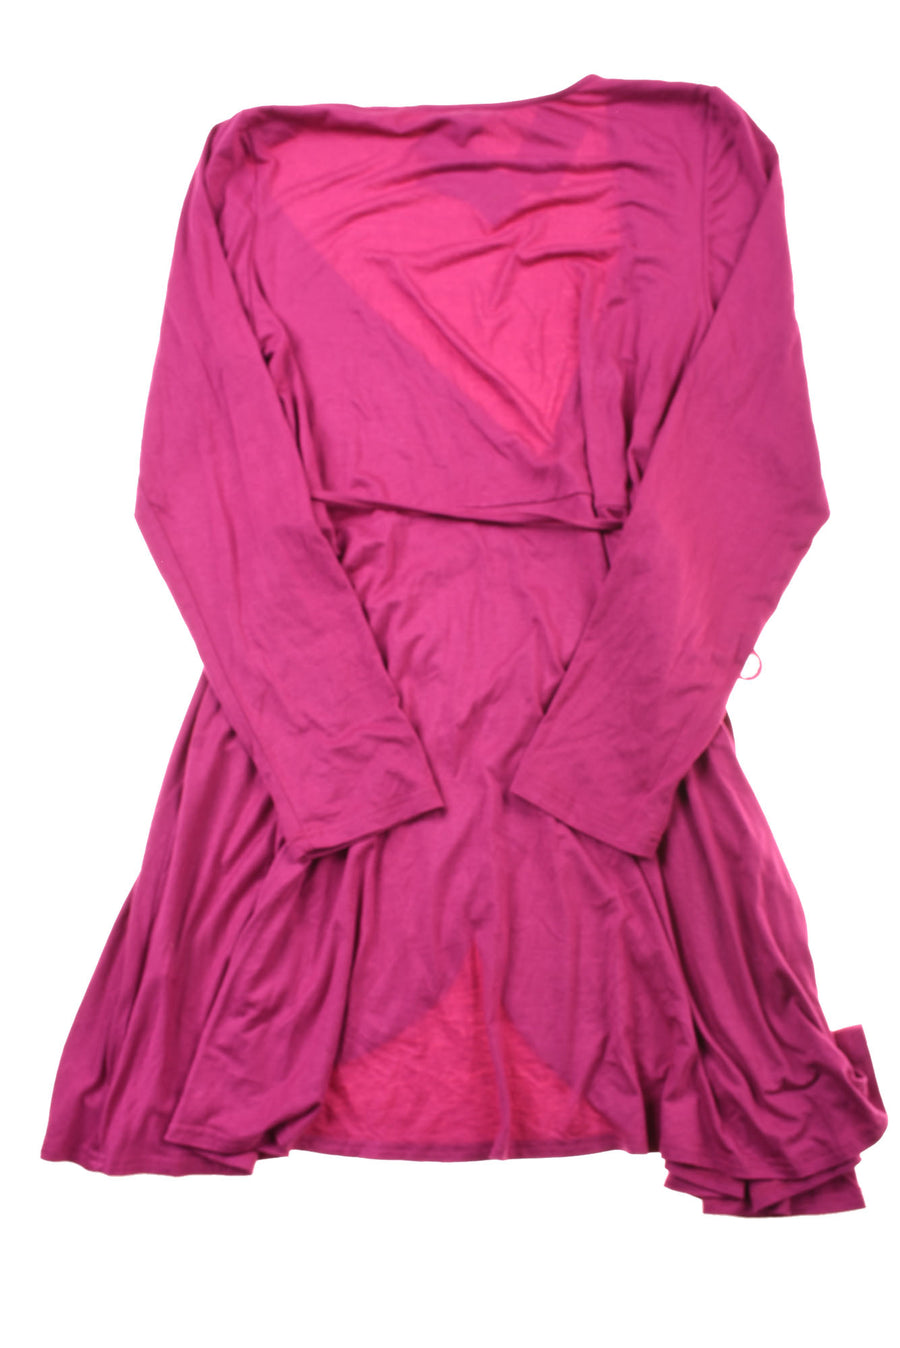 NEW Glamorous Women's Dress  Large Fuschia